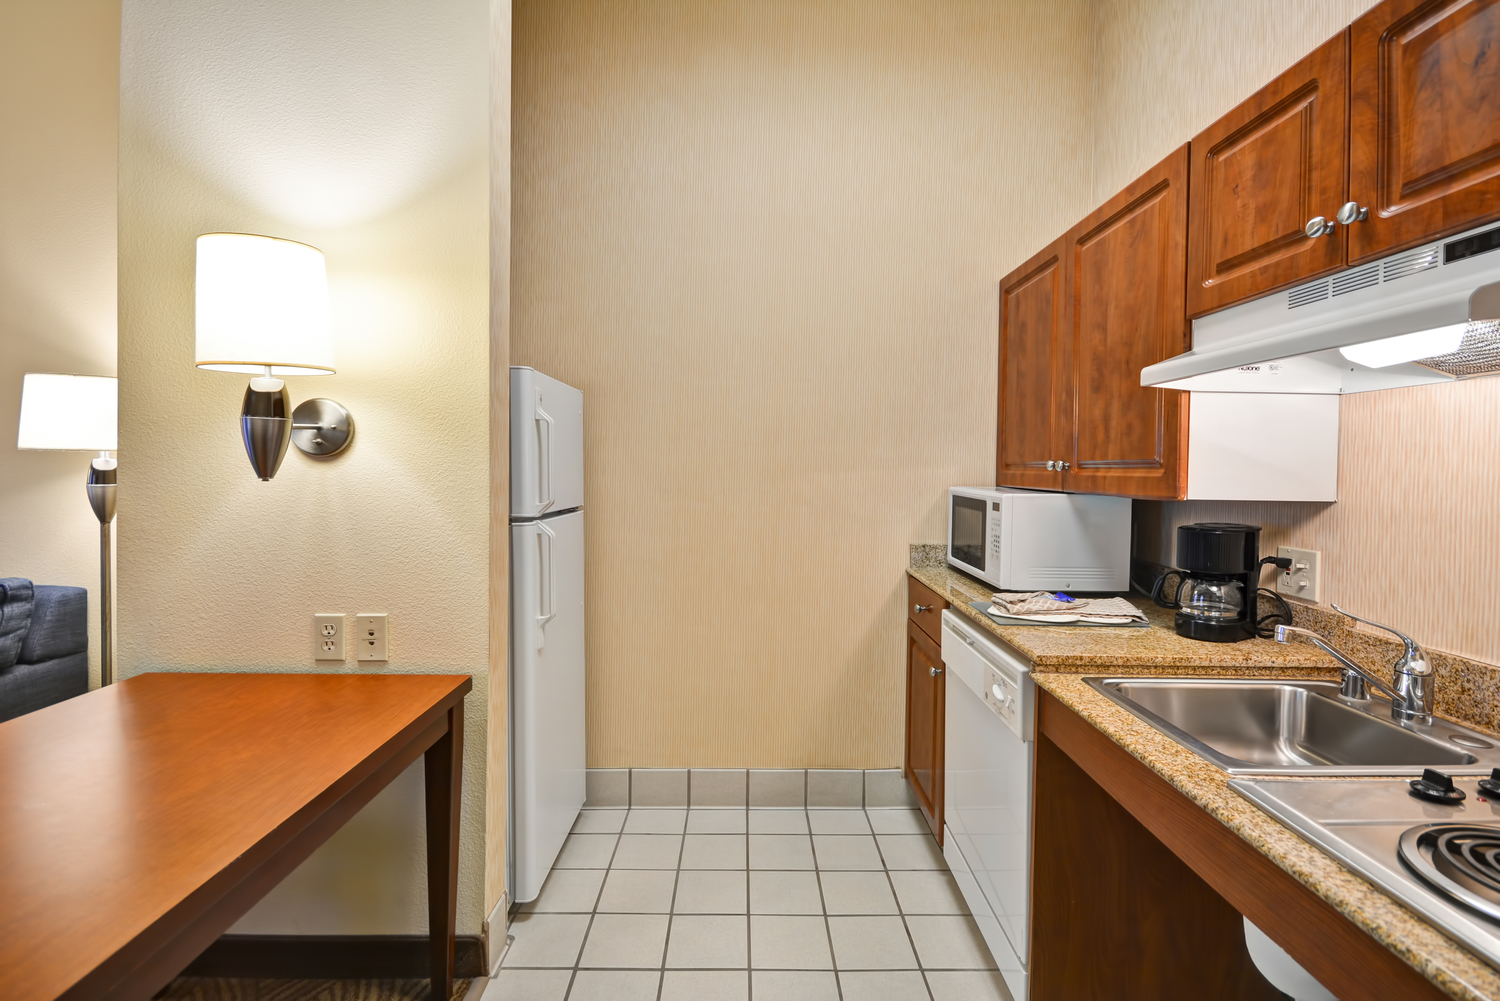 Homewood Suites At The Waterfront: Homewood Suites By Hilton Oakland-Waterfront, Oakland, CA